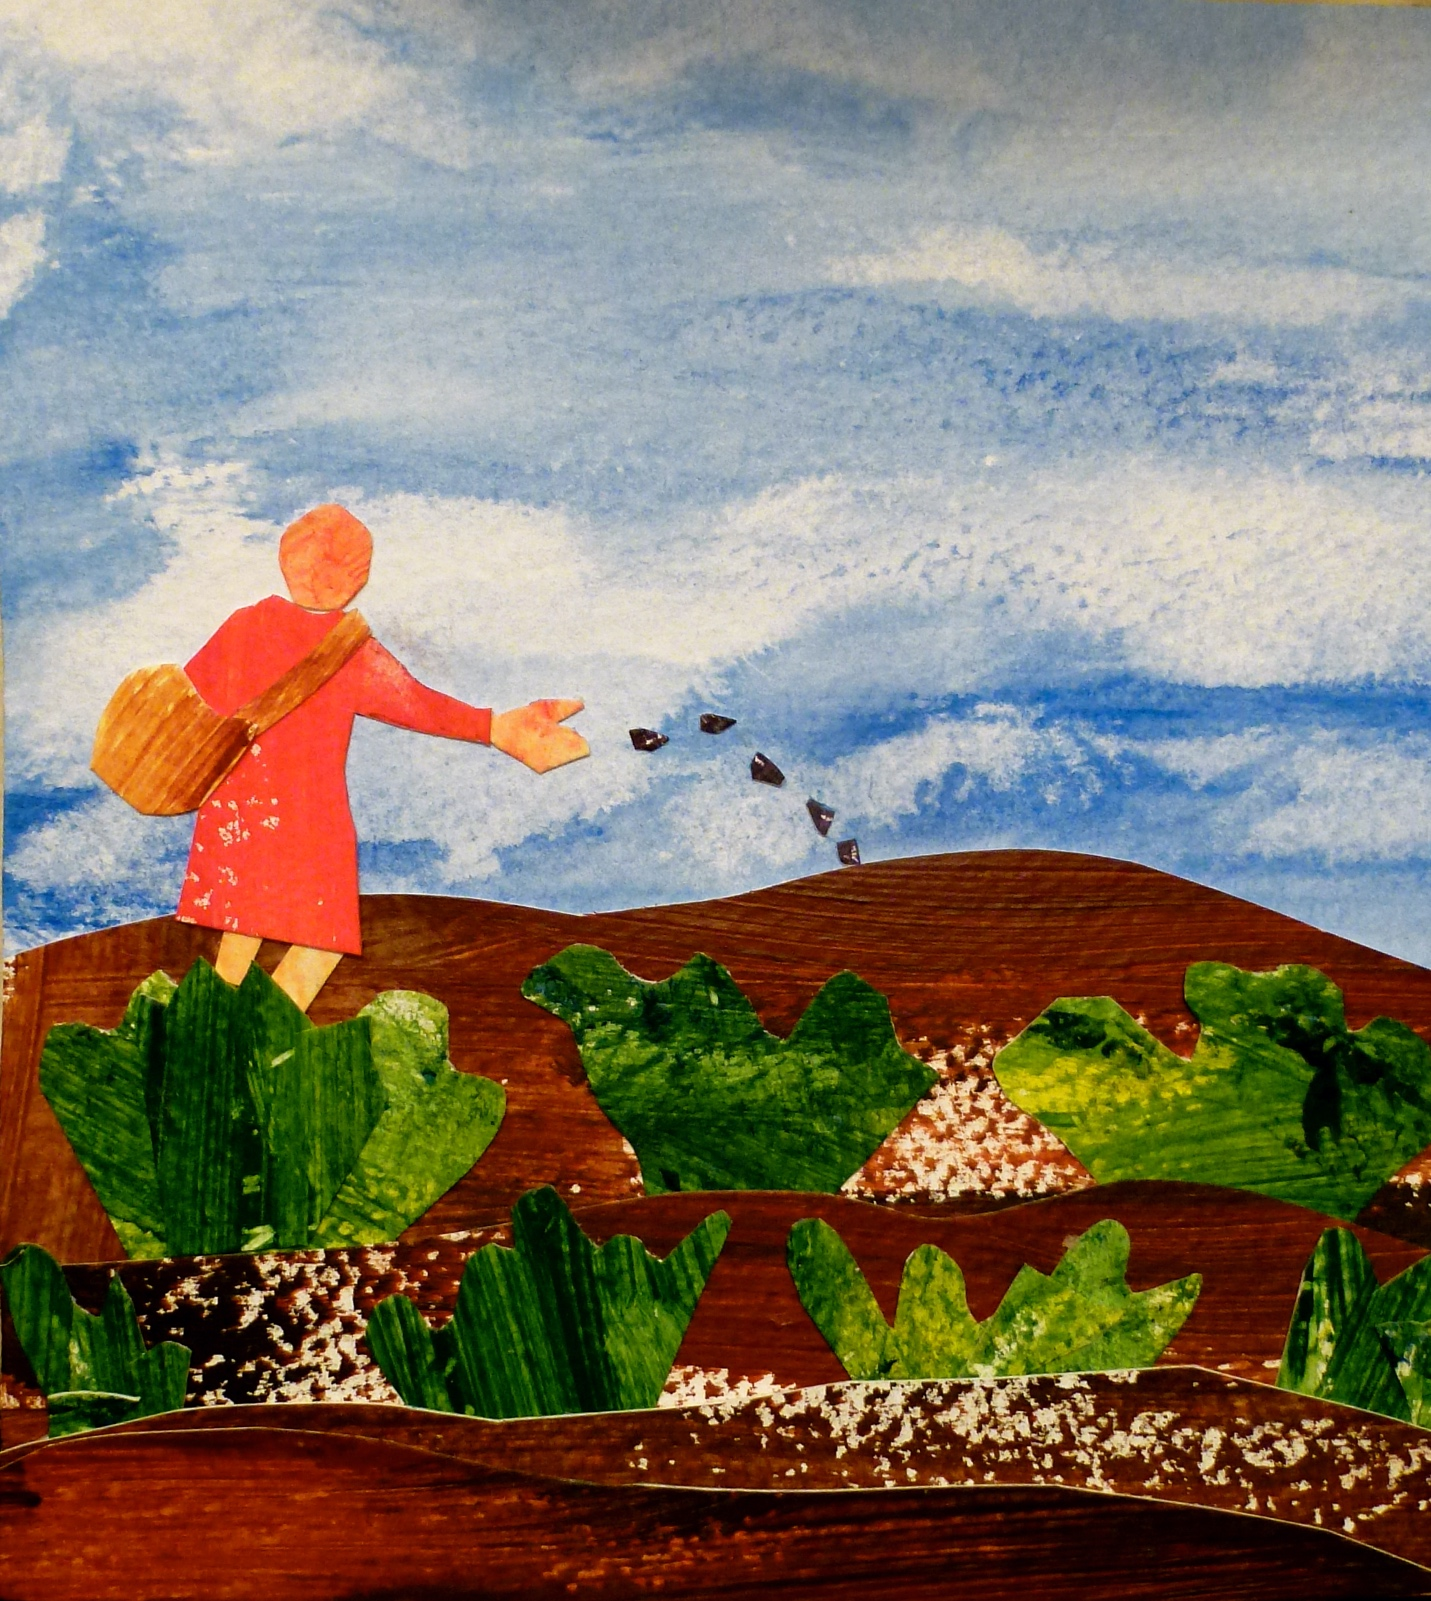 Chemotherapy and the Parable of the Sower